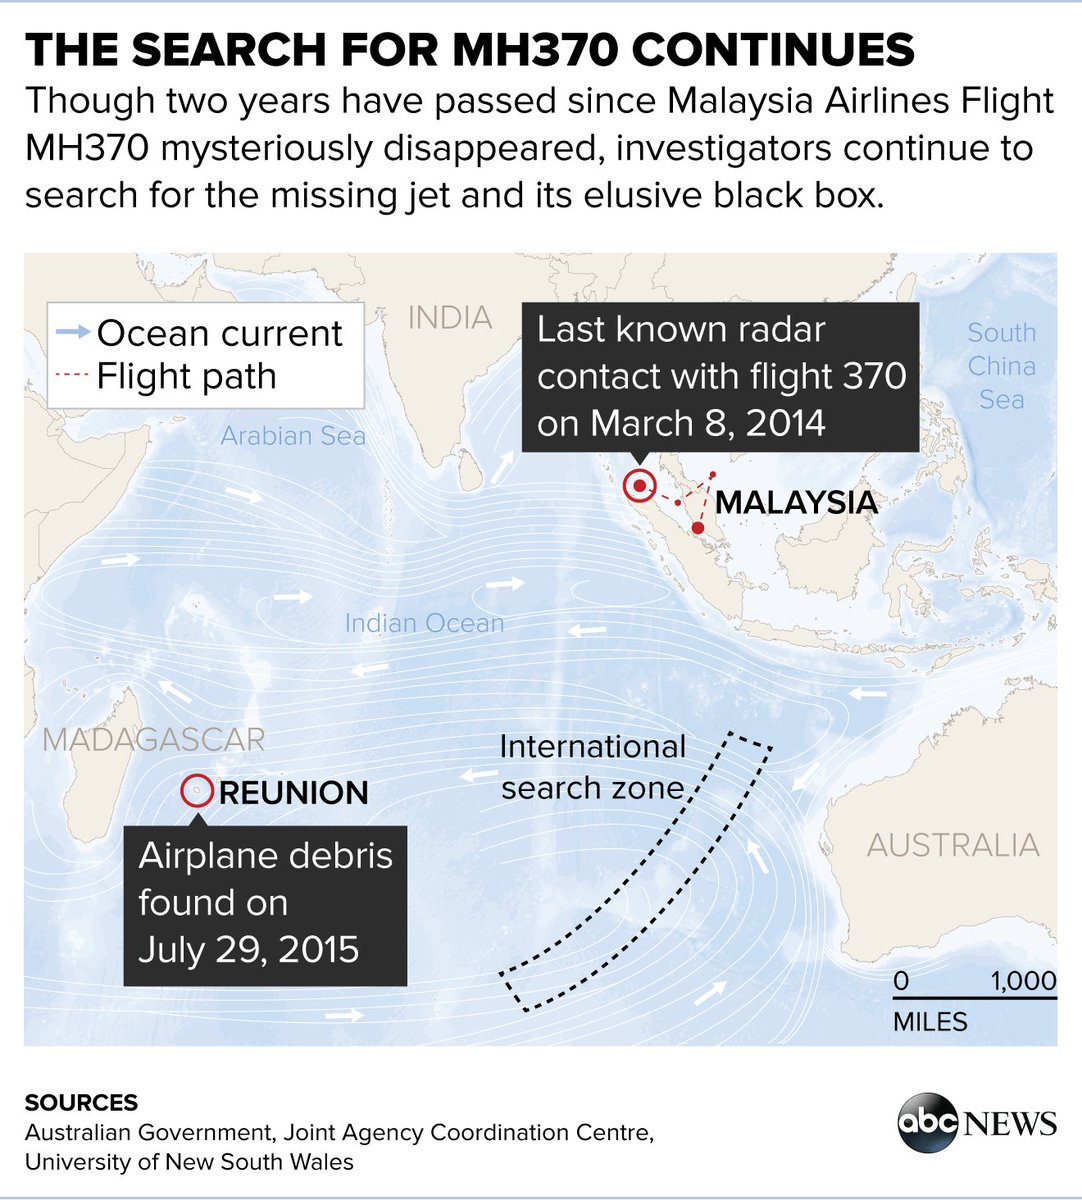 Investigators continue to search for MH370 two years after plane mysteriously disappeared.